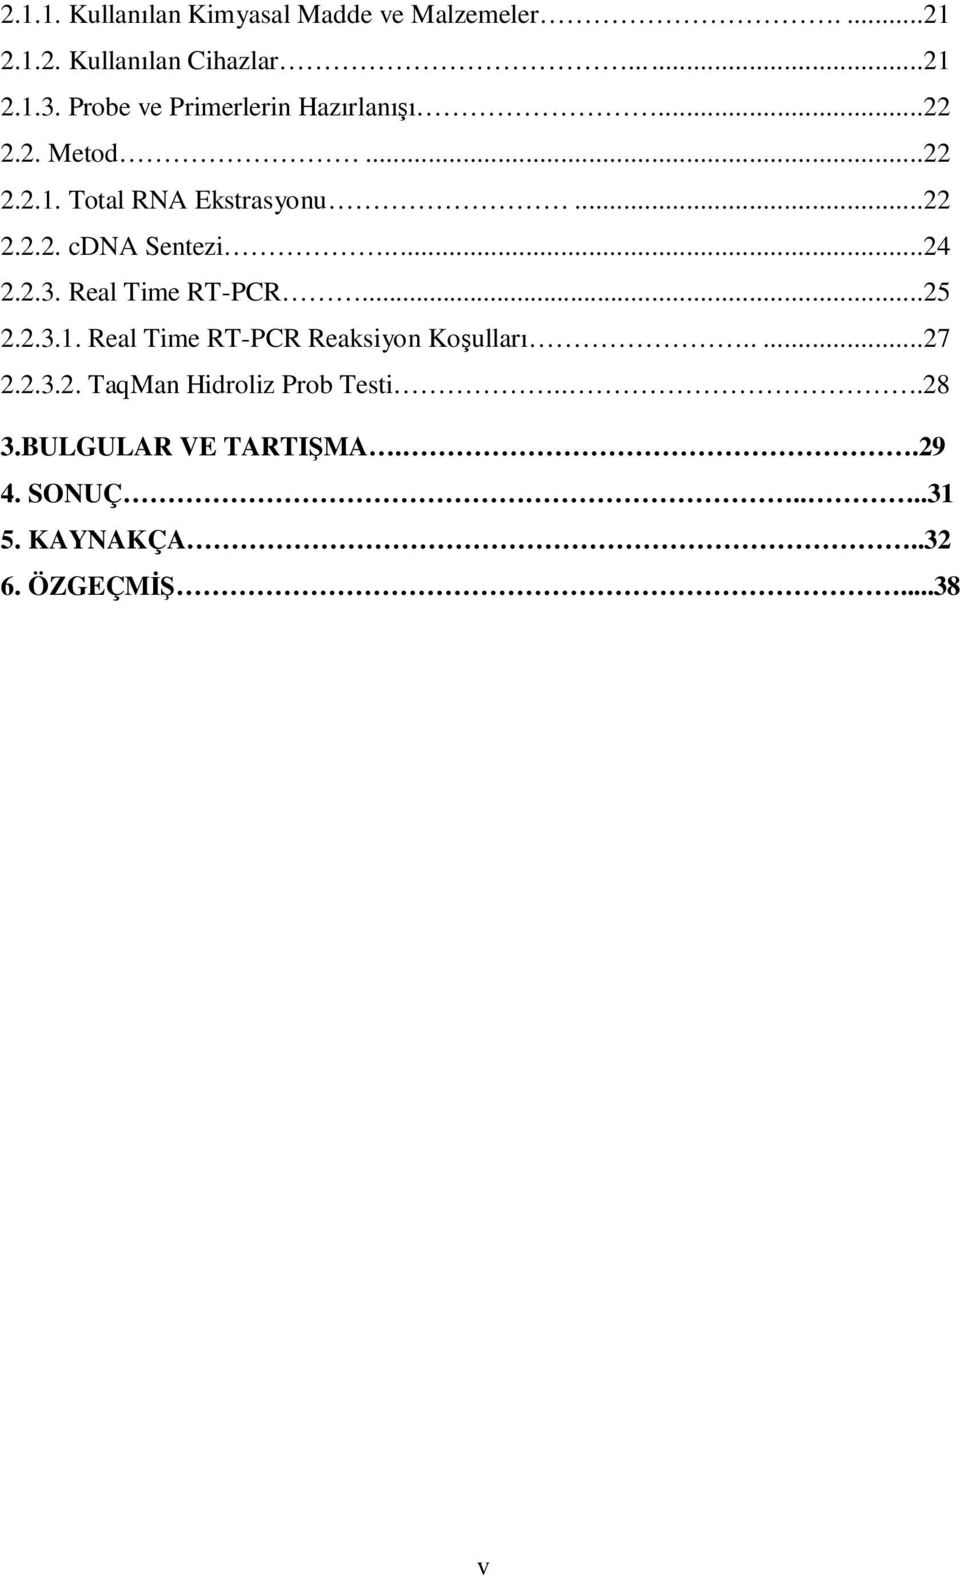 ..24 2.2.3. Real Time RT-PCR...25 2.2.3.1. Real Time RT-PCR Reaksiyon Koşulları.....27 2.2.3.2. TaqMan Hidroliz Prob Testi.